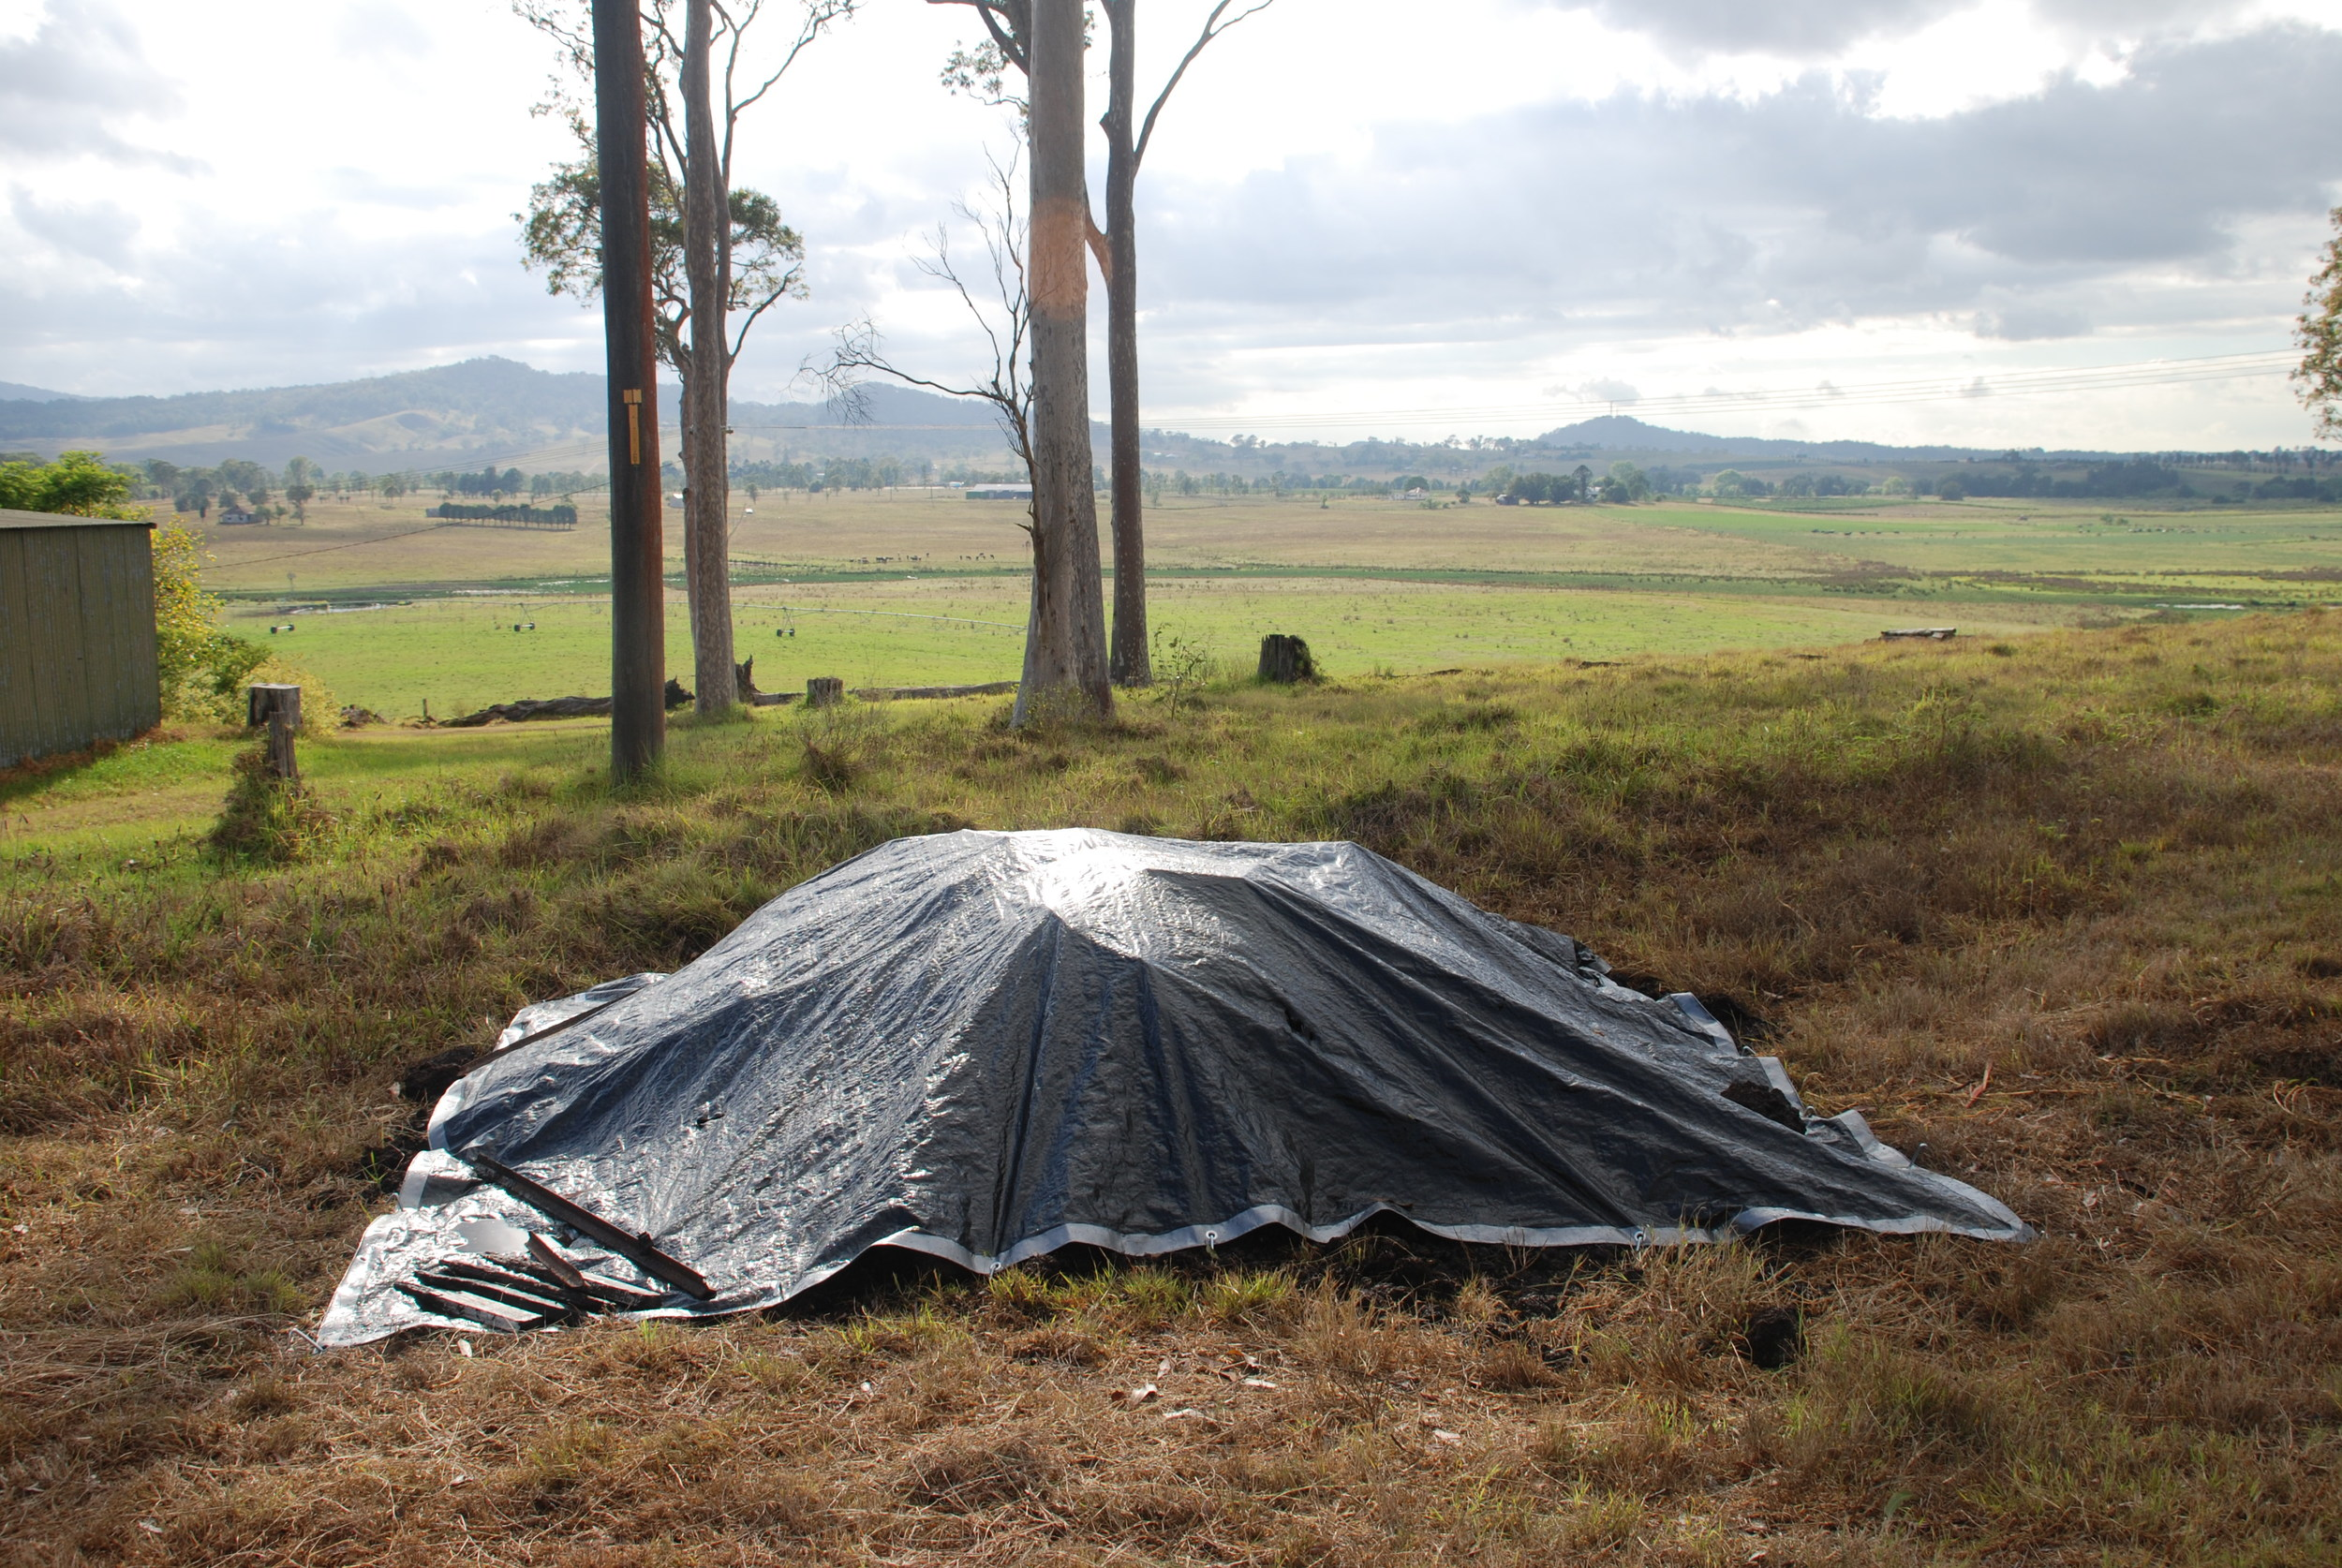 Whale remains buried in a field in the Hunter Valley, NSW. © Sandy Ingleby (used with permission)